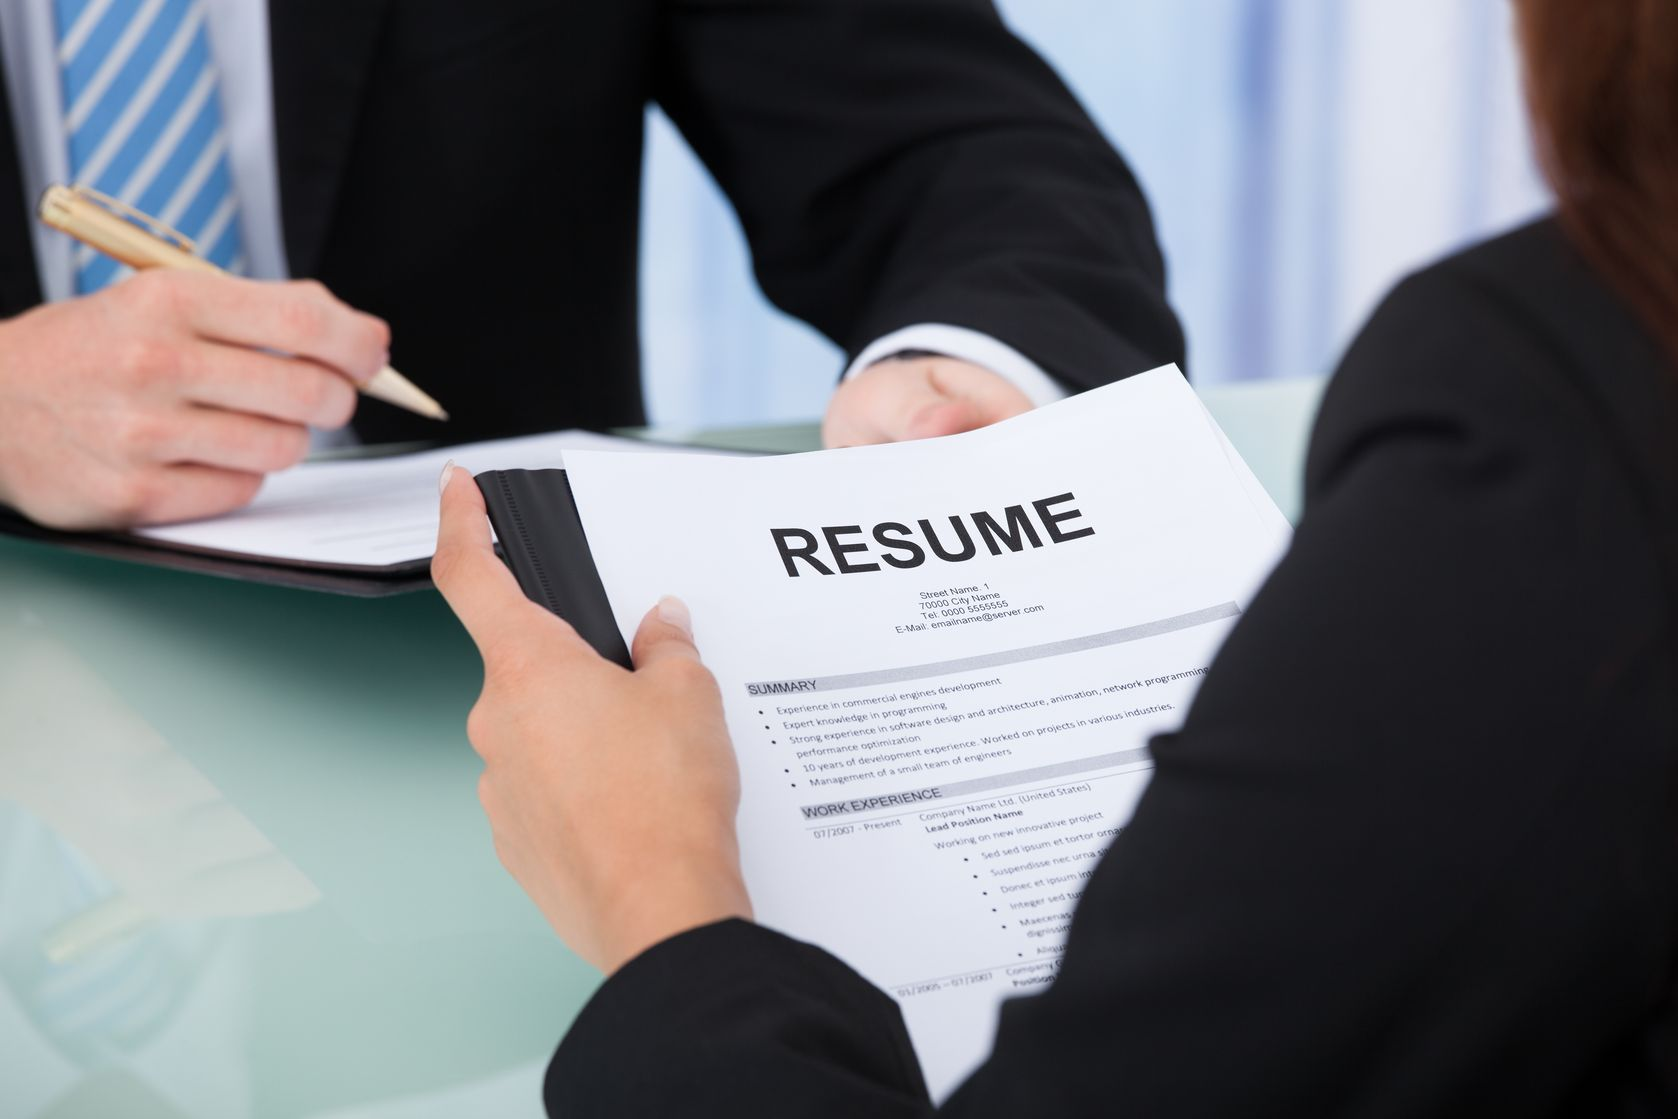 make your resume stand out with these words jobstreet for writing ml office assistant Resume Power Words For Resume Writing